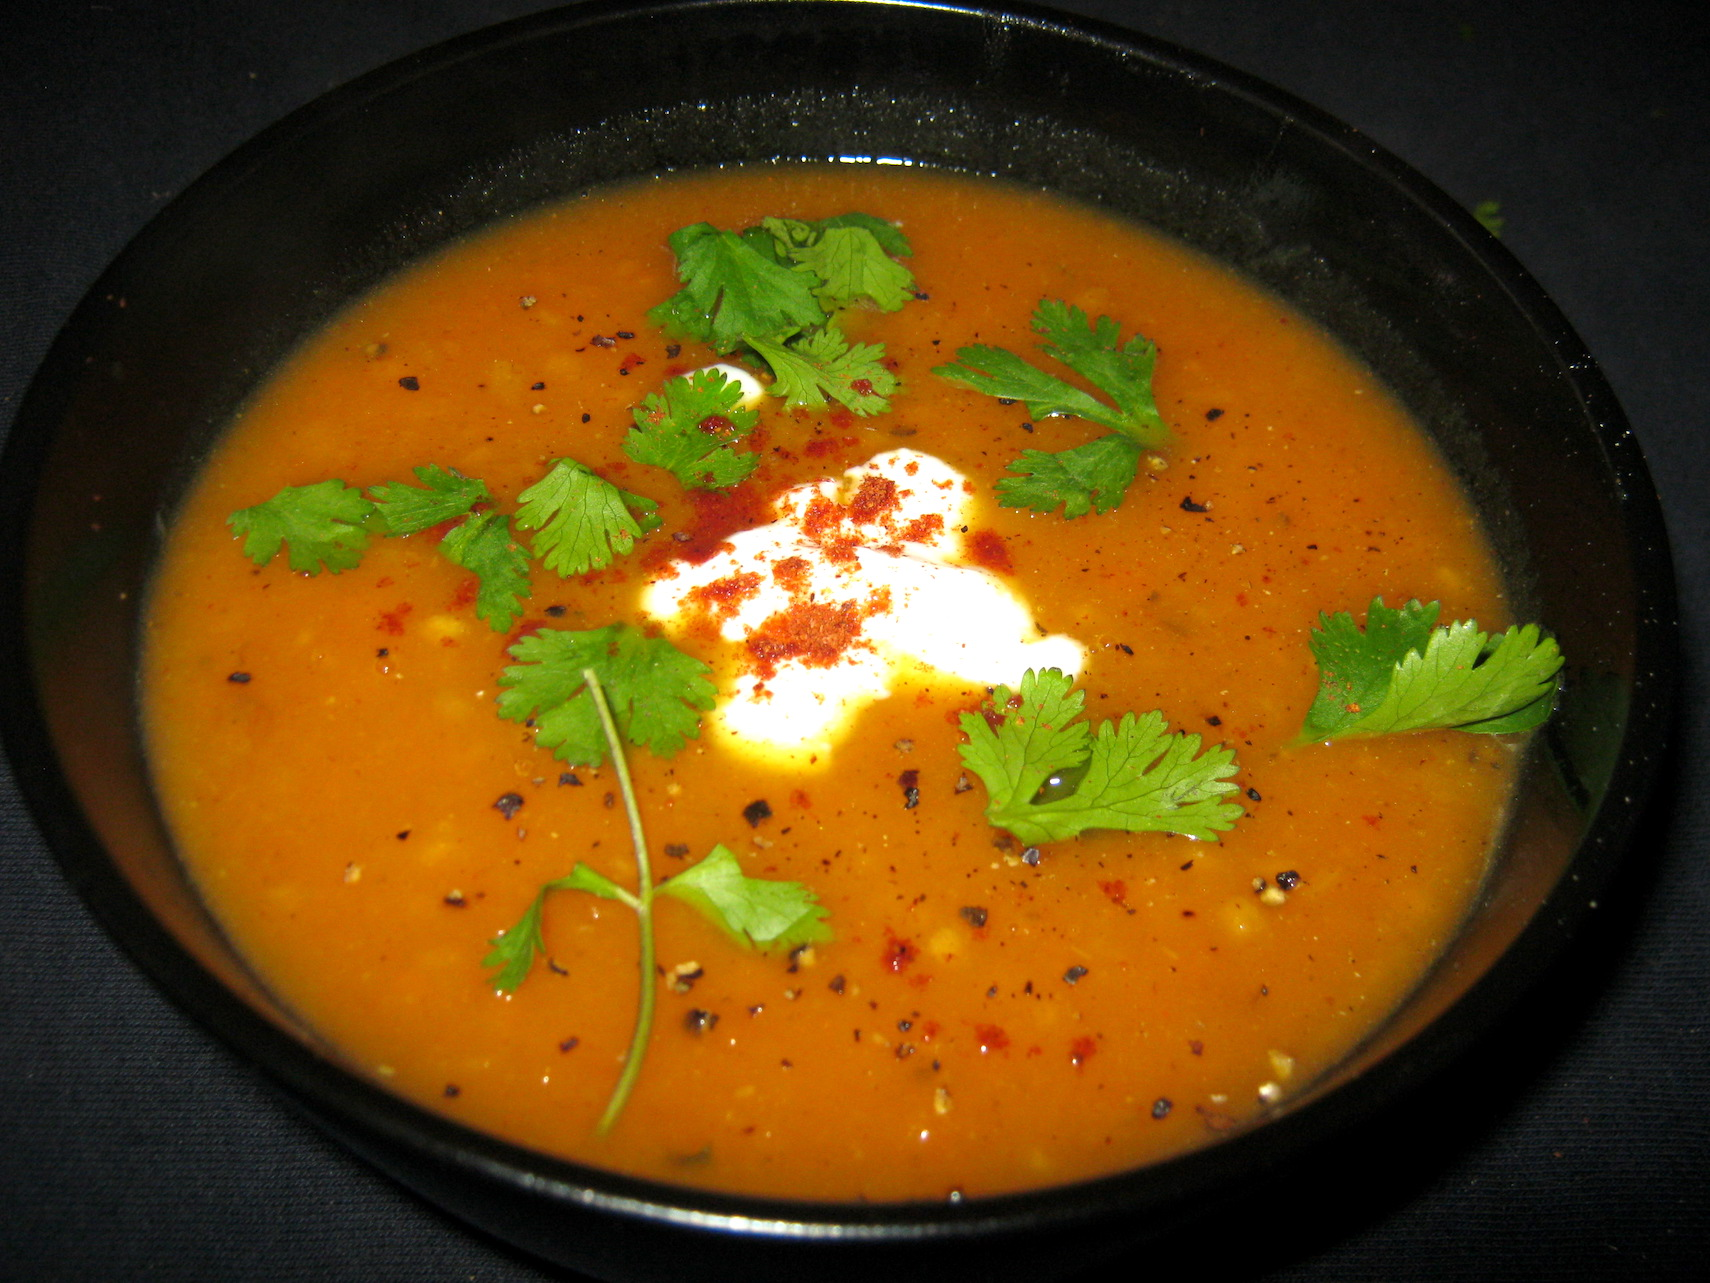 Sweet potato soup ala Alicia garnished with coriander leaves in a black bowl